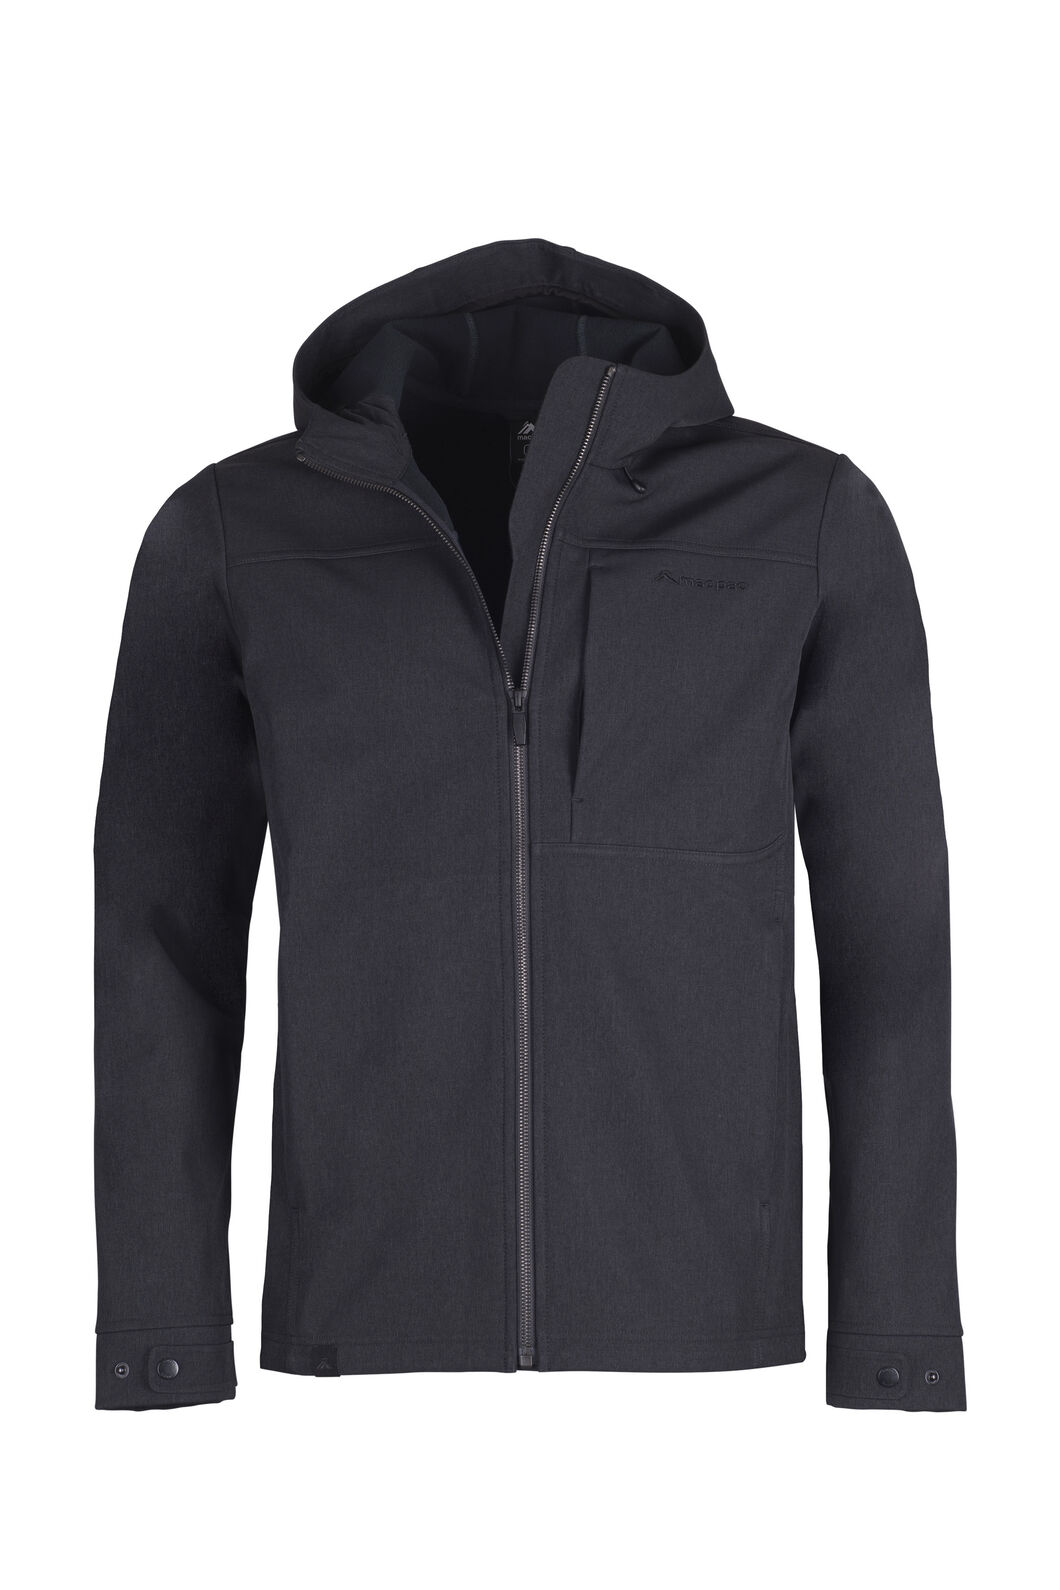 Macpac Chord Softshell Hooded Jacket — Men's, Black, hi-res